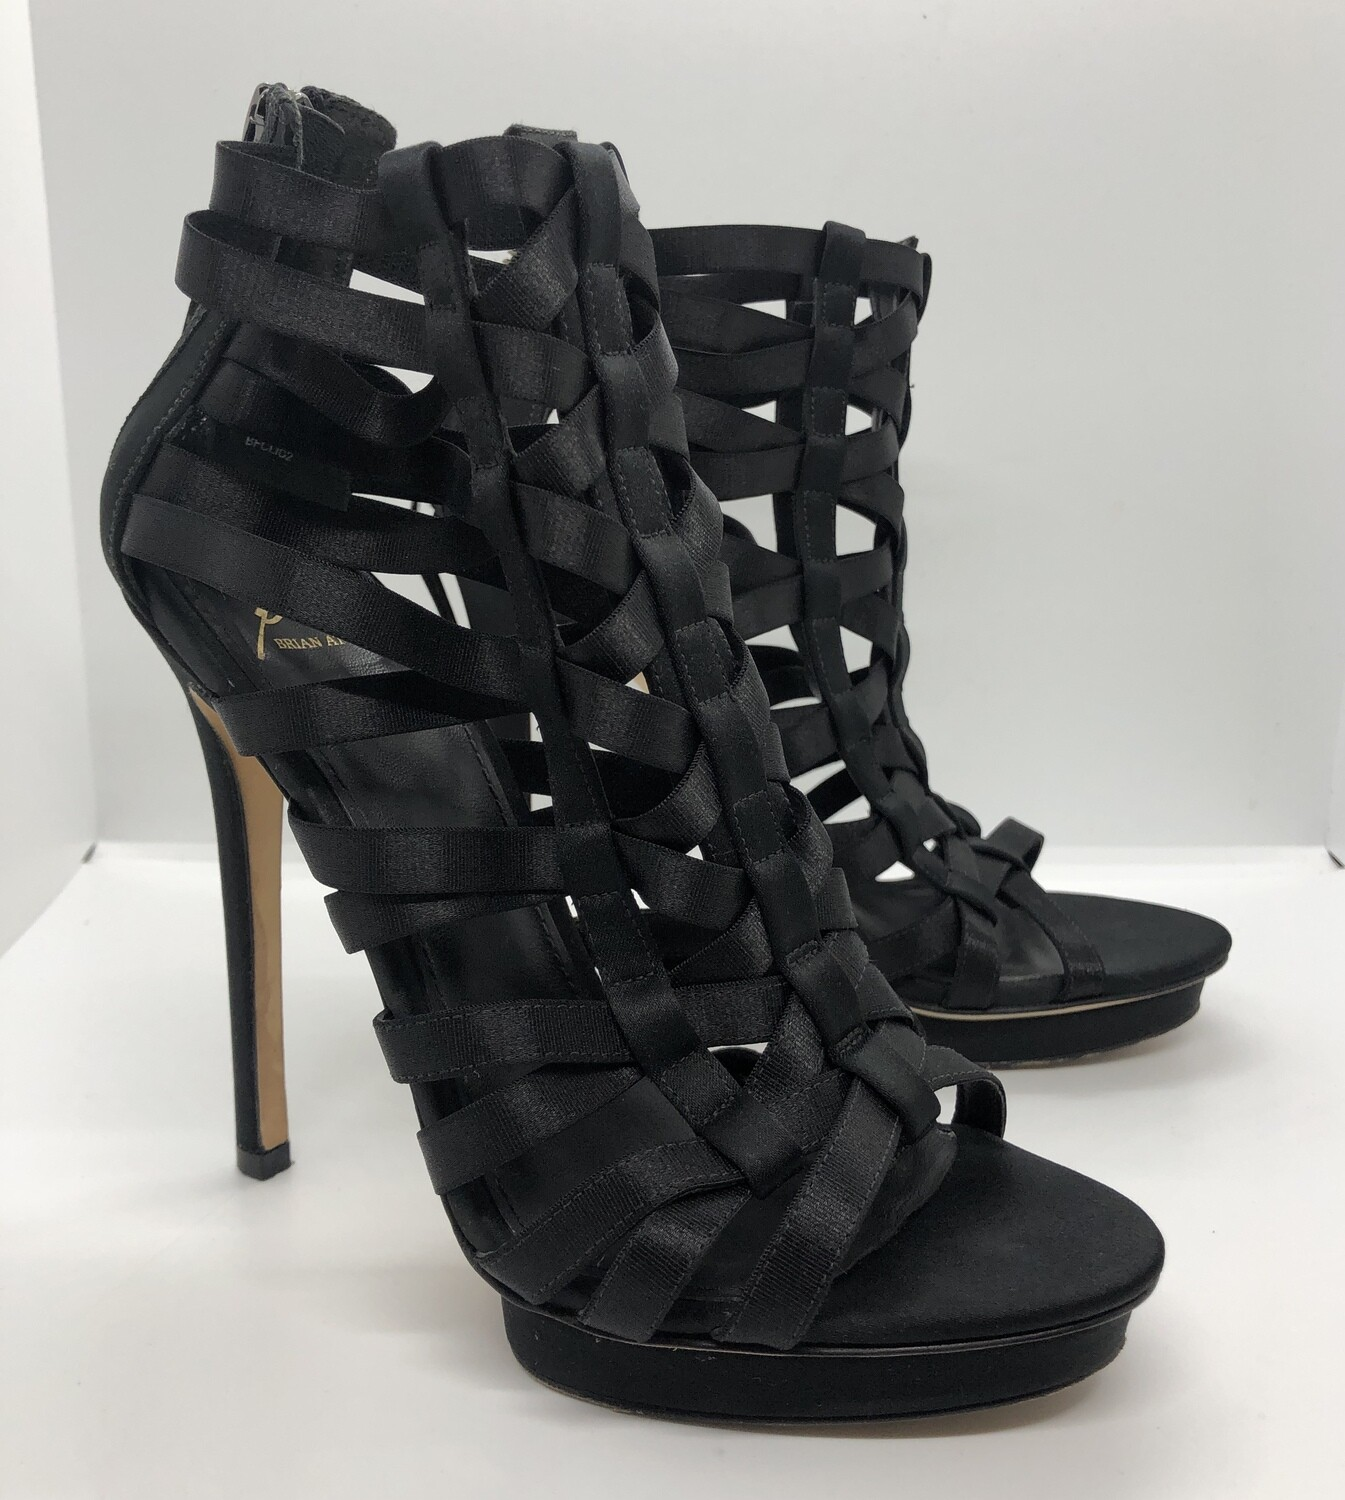 BRIAN ATWOOD Ribbon Stilletto Bootie Heels size 6 1/2